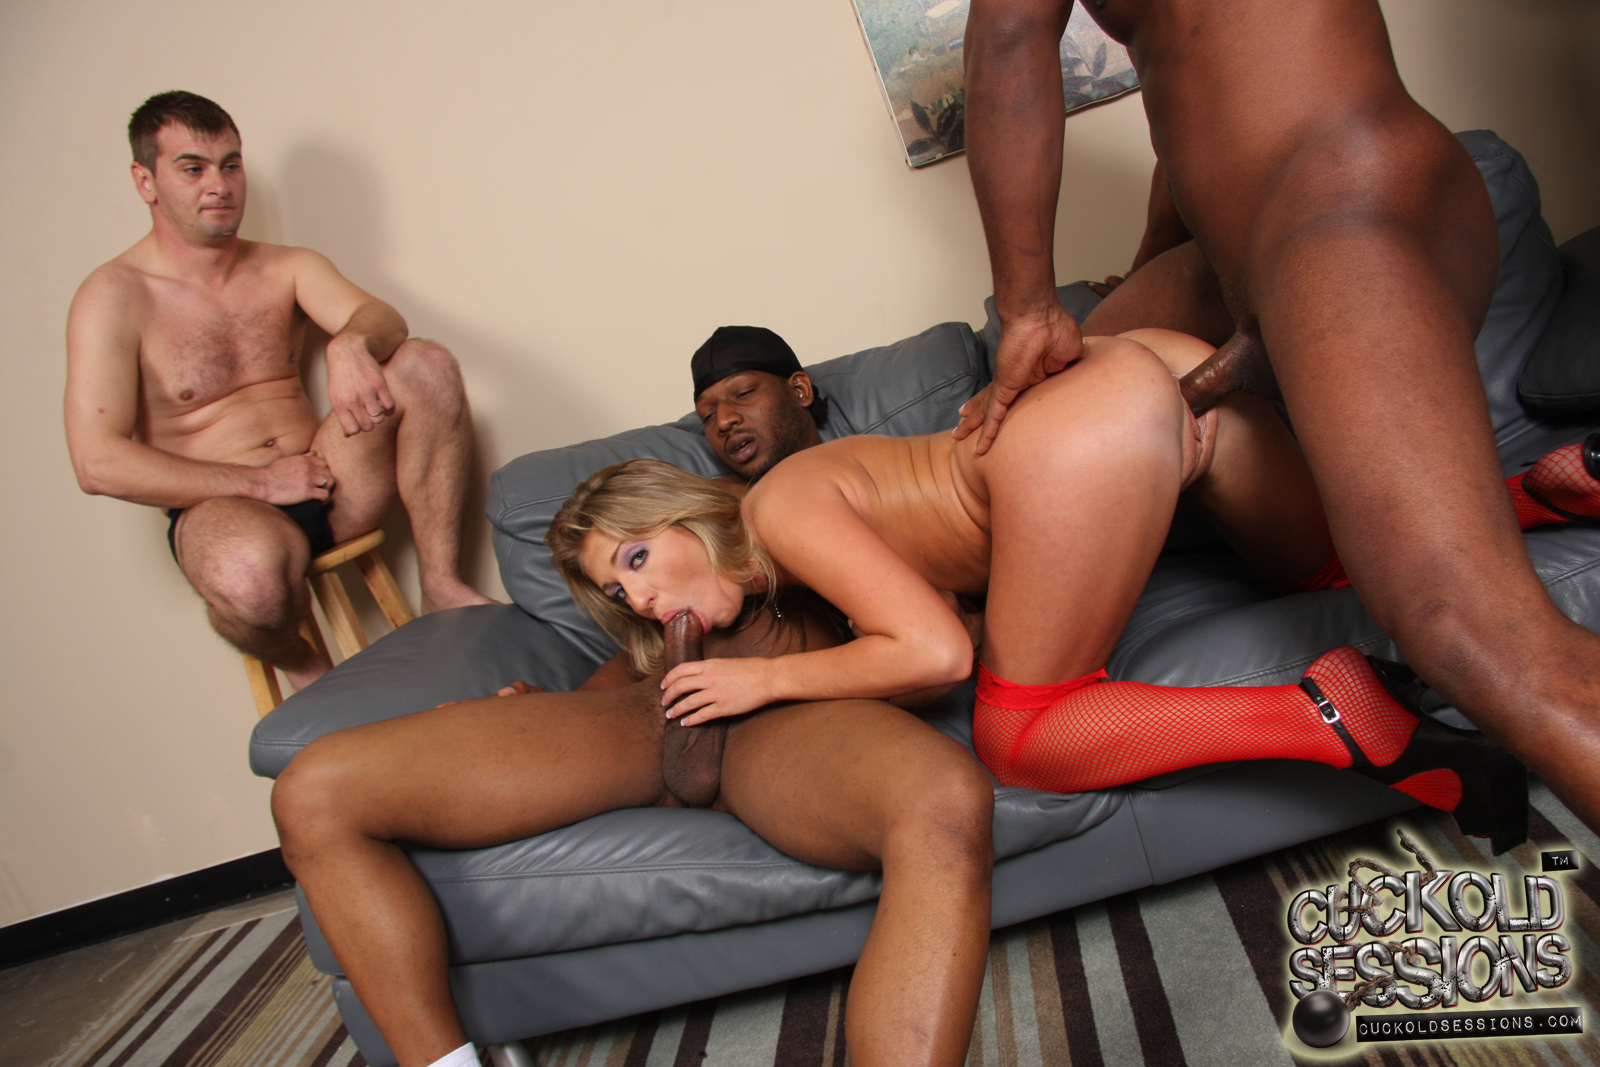 galleries cuckoldsessions content jaelyn fox pic 21